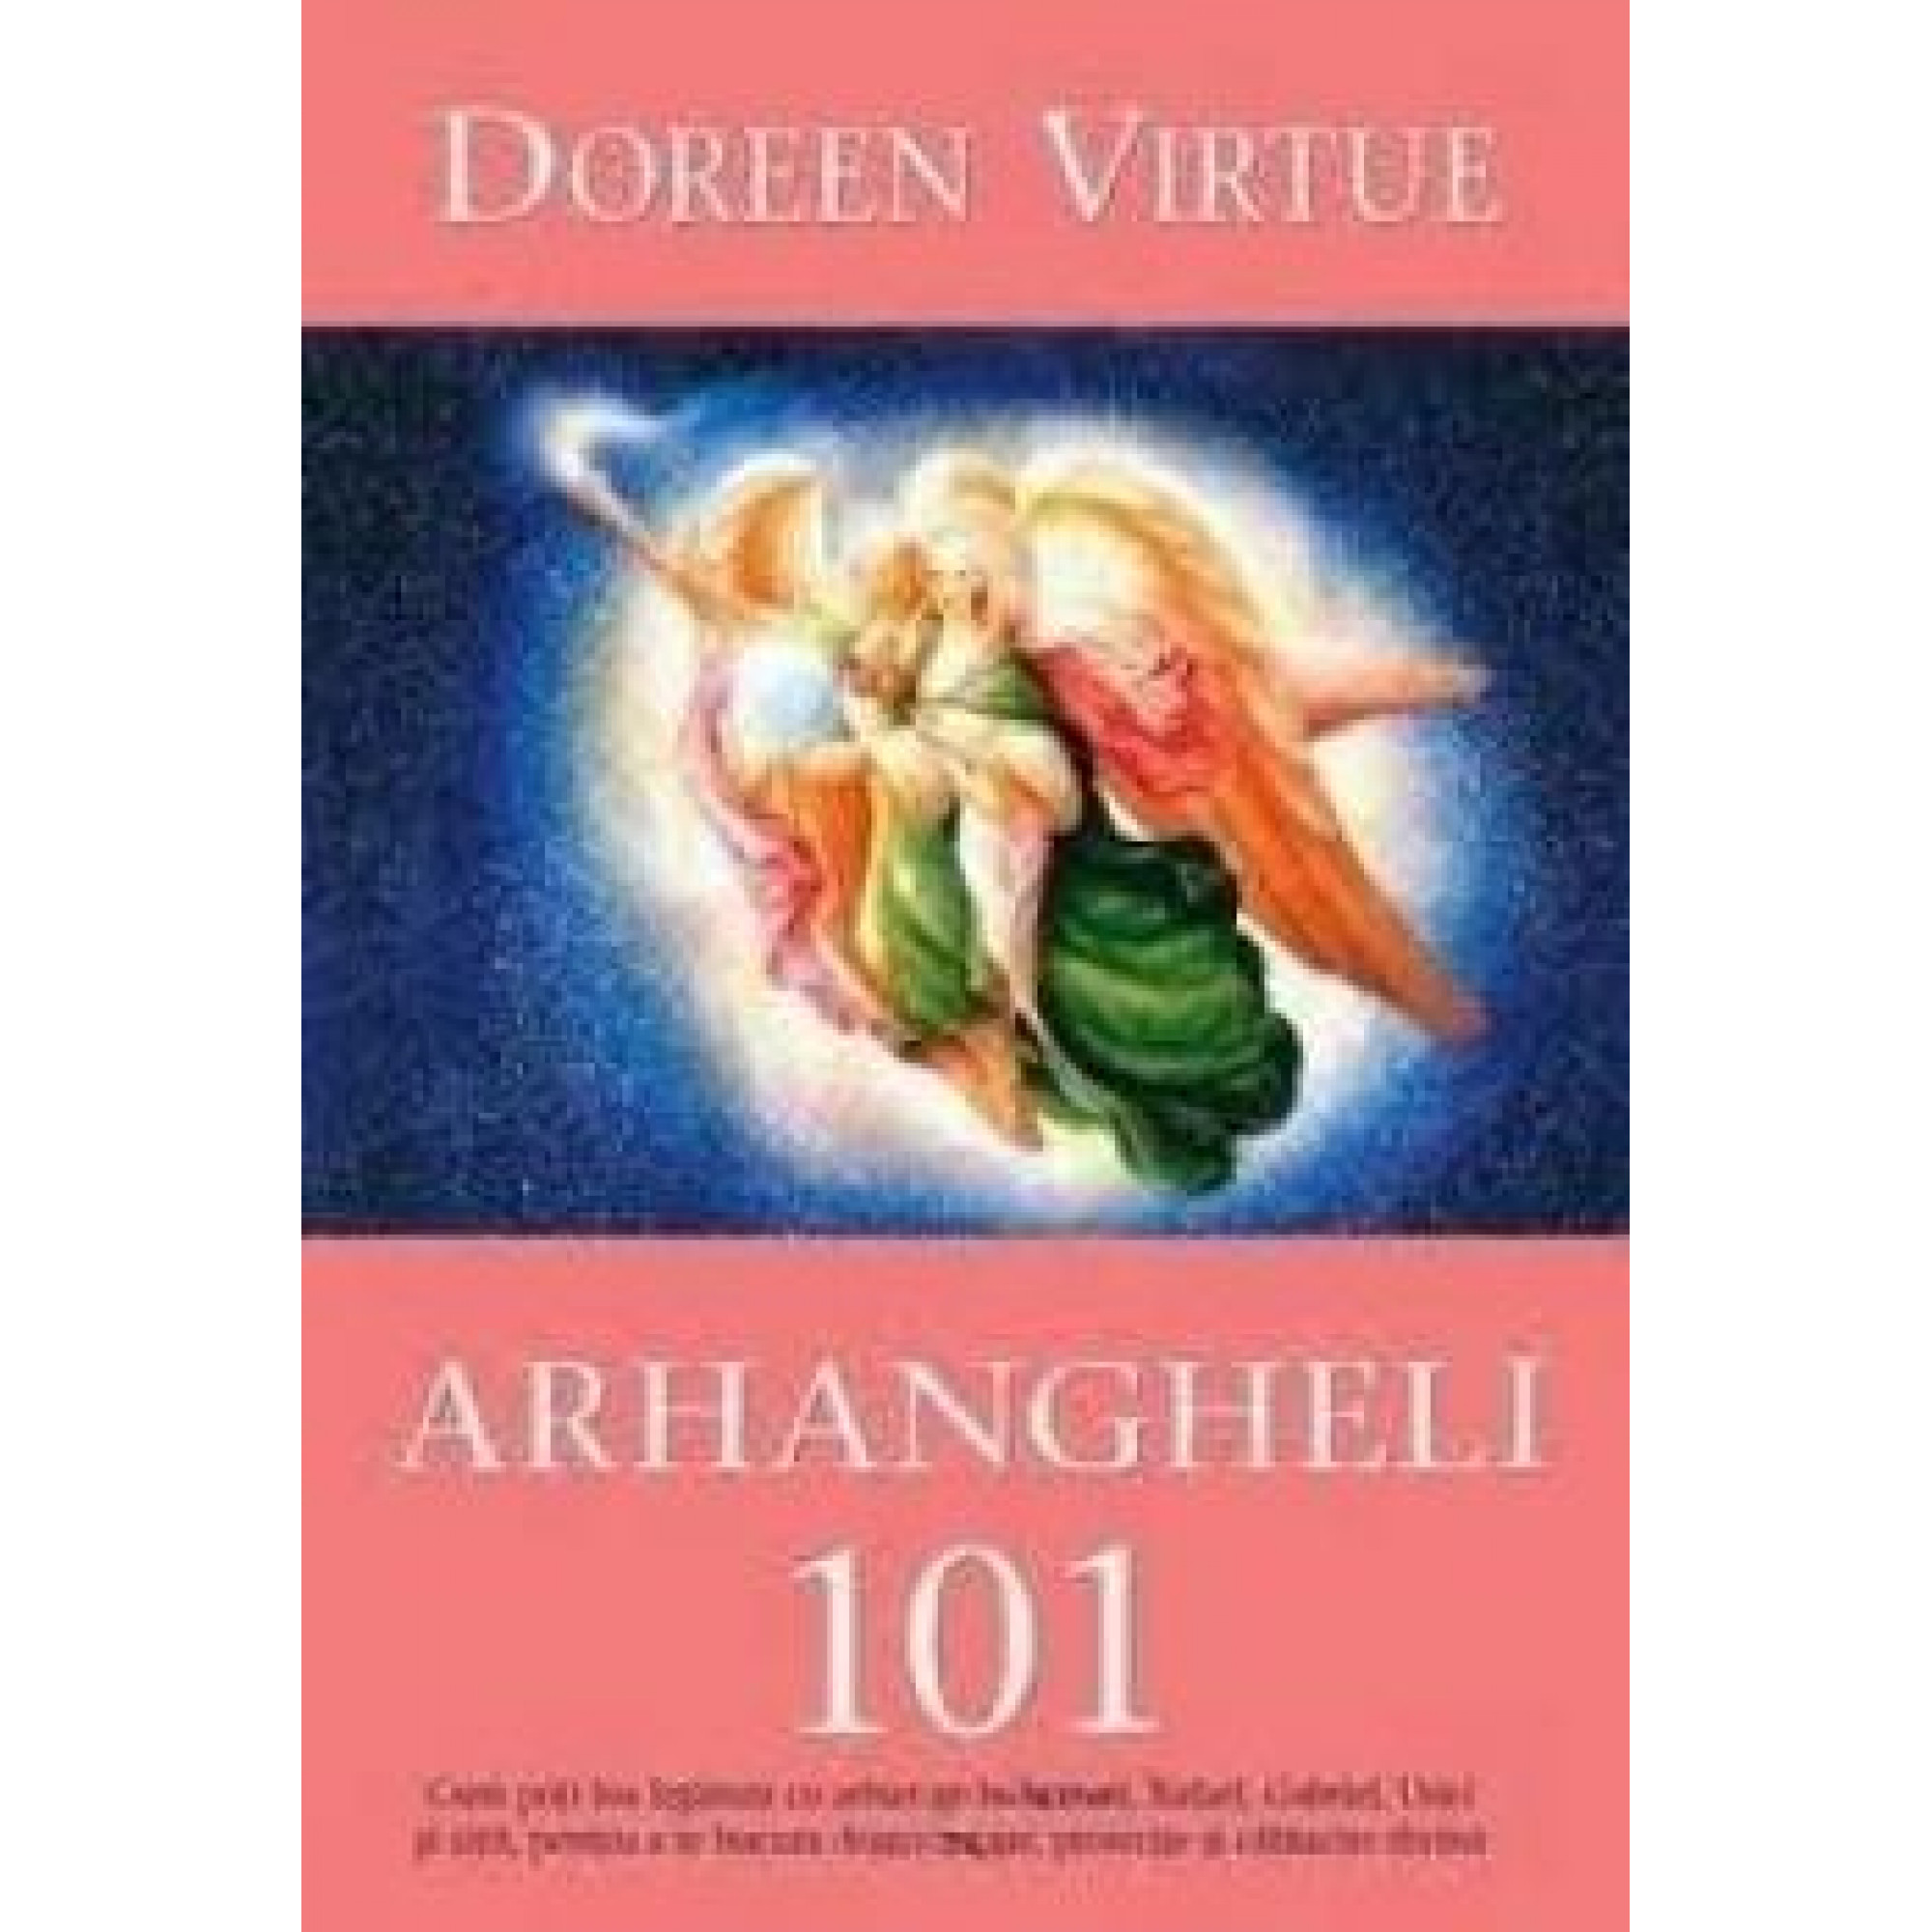 Arhangheli 101; Doreen Virtue